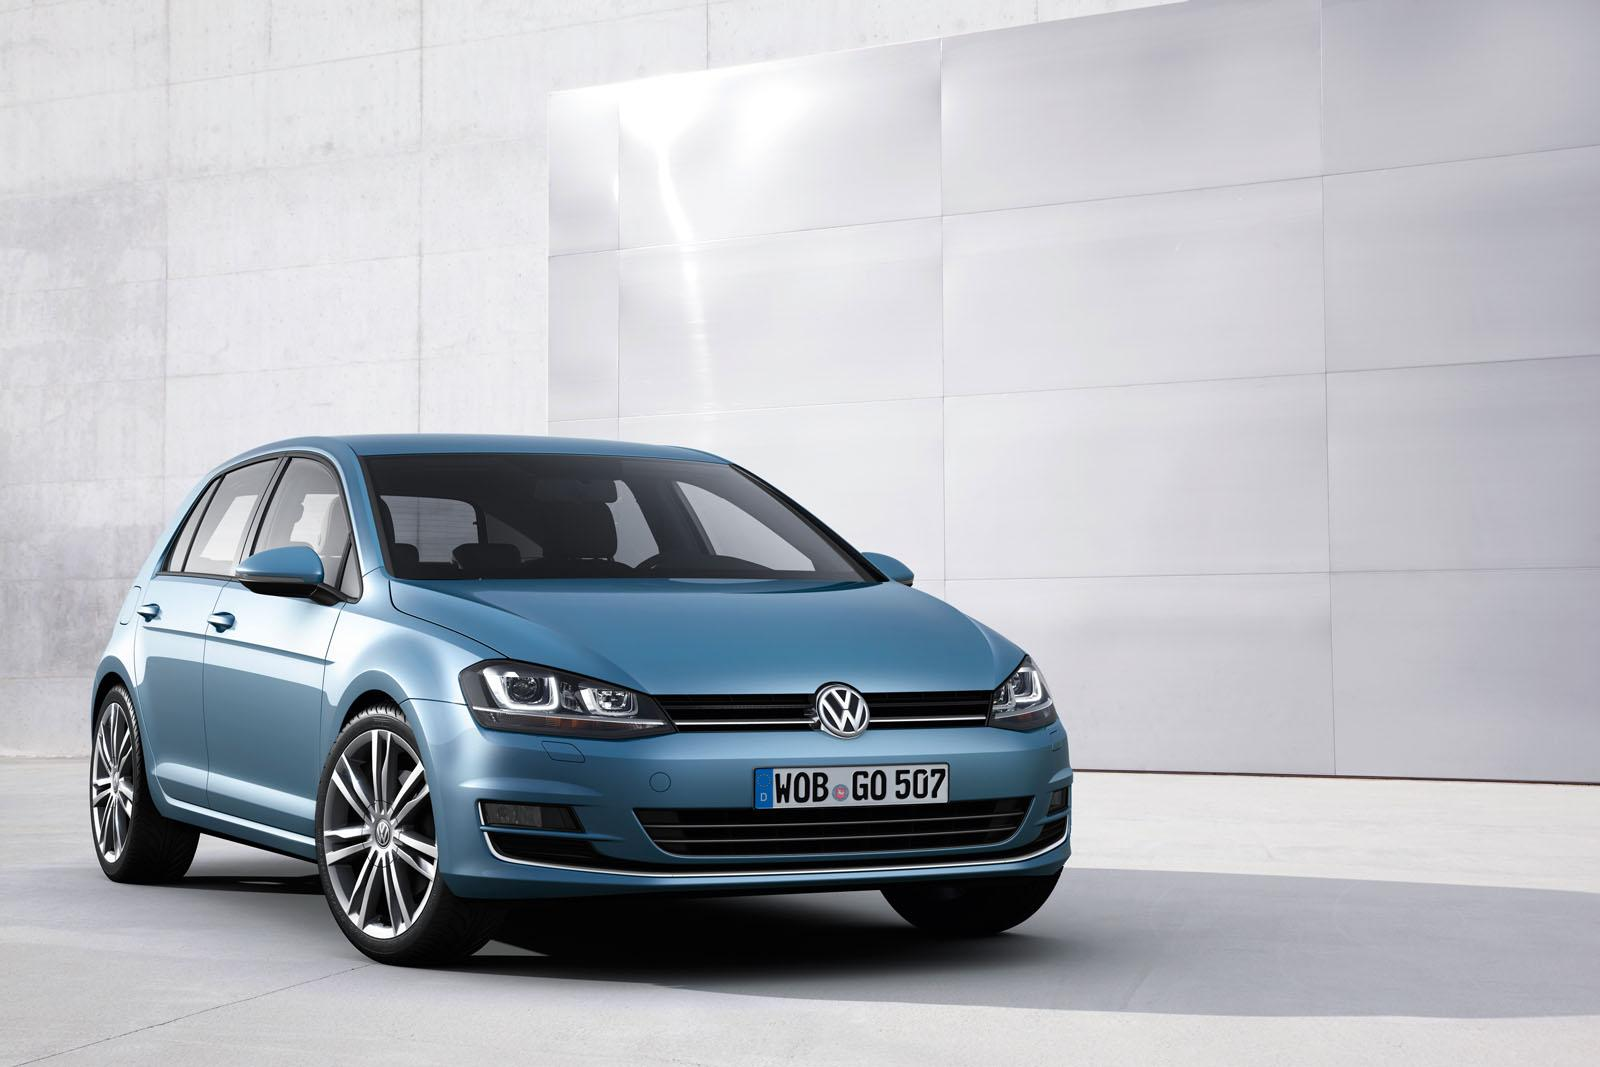 volkswagen golf vii official specs and images released. Black Bedroom Furniture Sets. Home Design Ideas